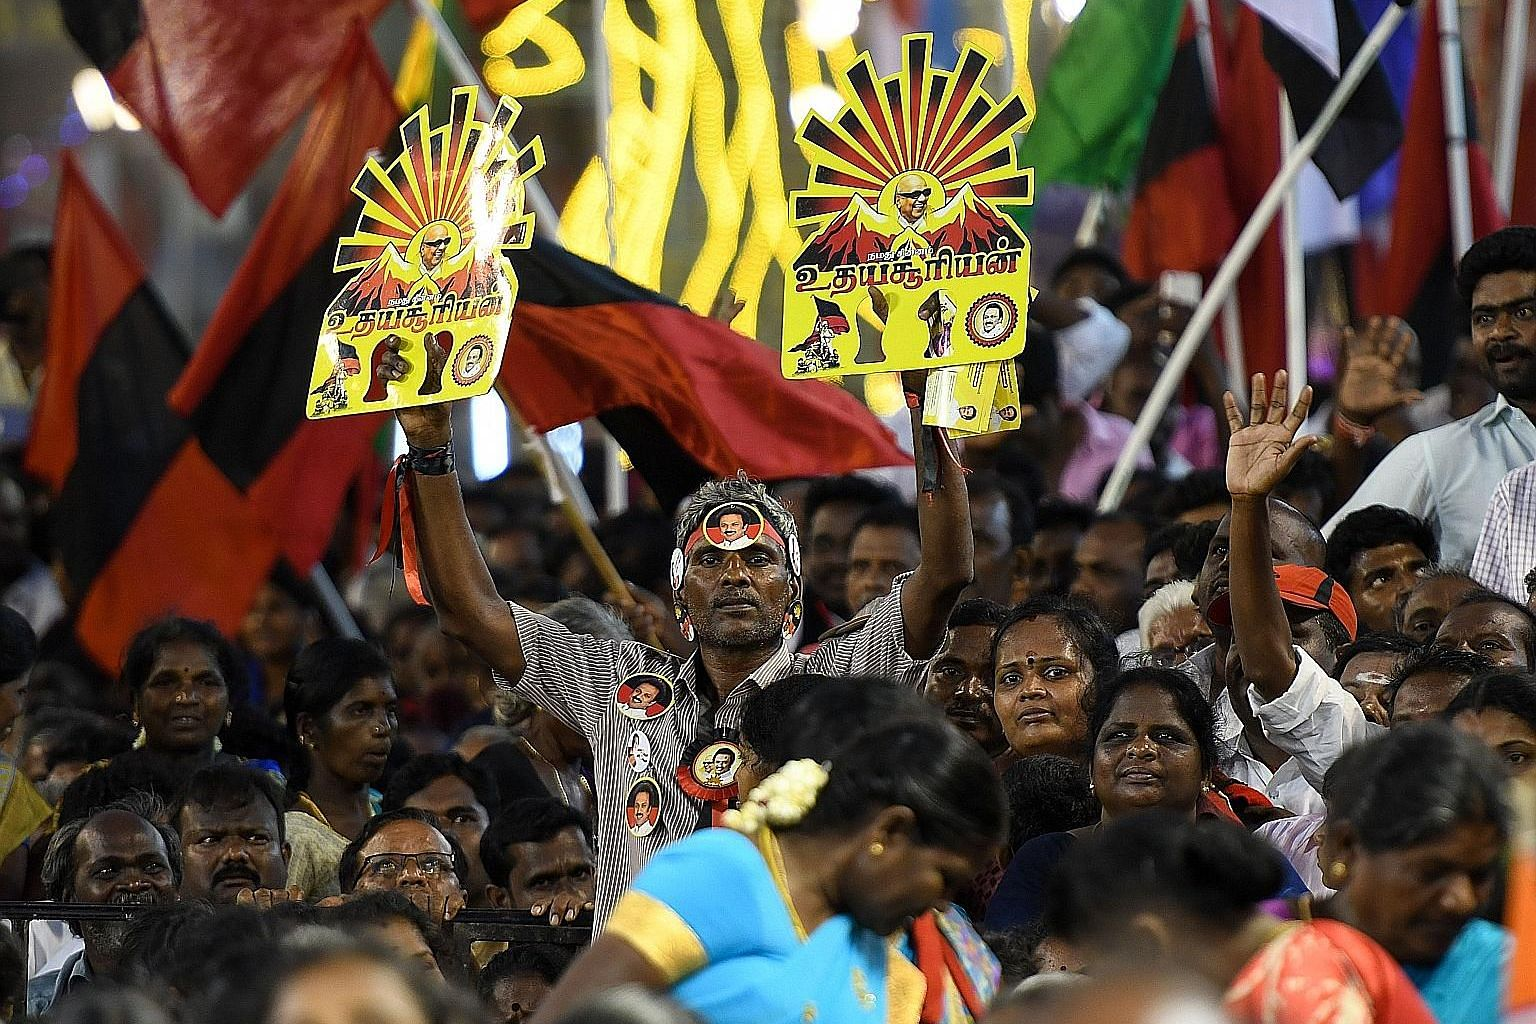 A member of the Dravida Munnetra Kazhagam showing support for the party with placards during an election rally in India's Tamil Nadu state in April. The party is opposed to the introduction of a third compulsory language.